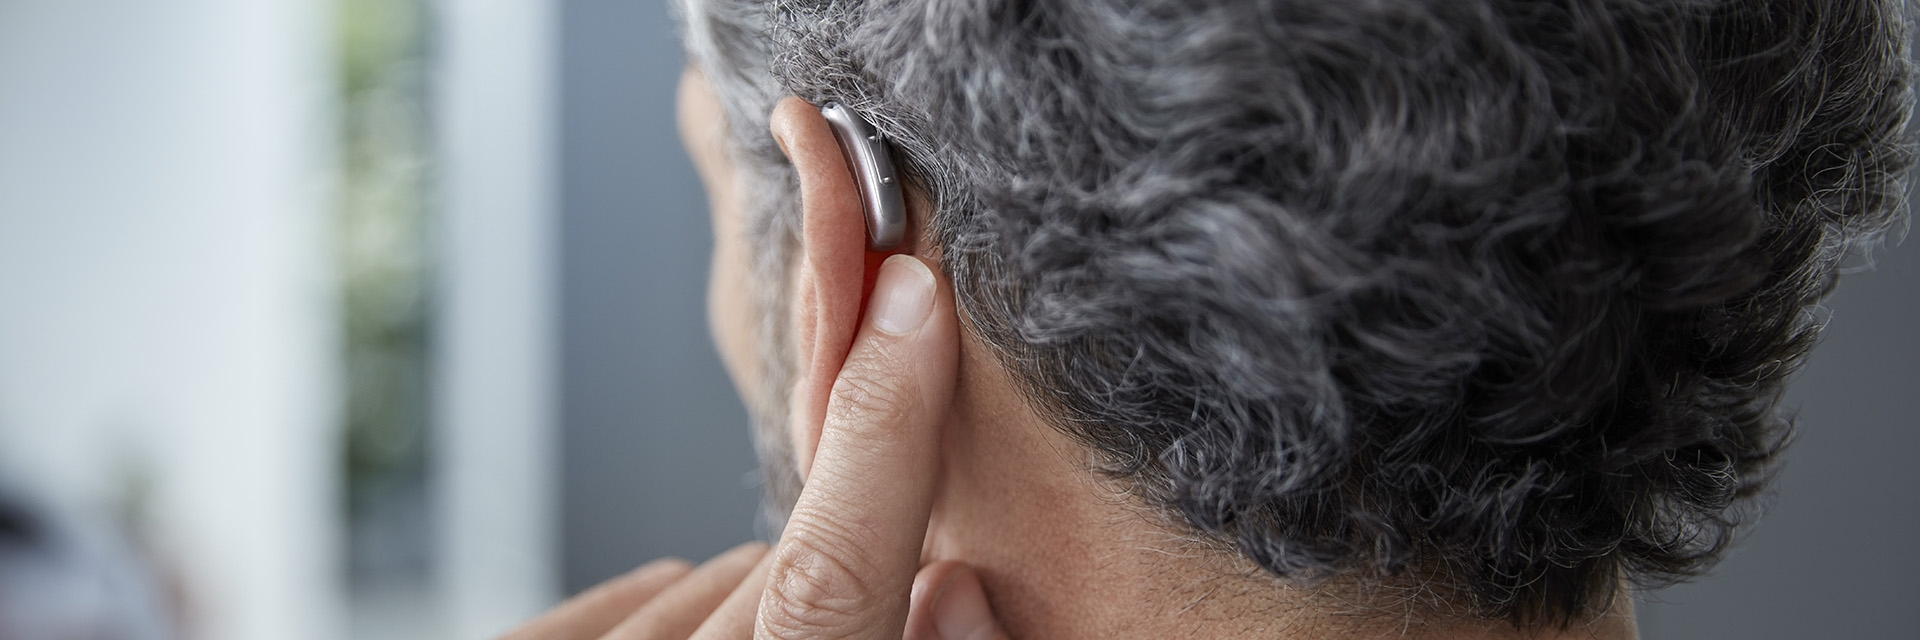 Pure X series hearing aids